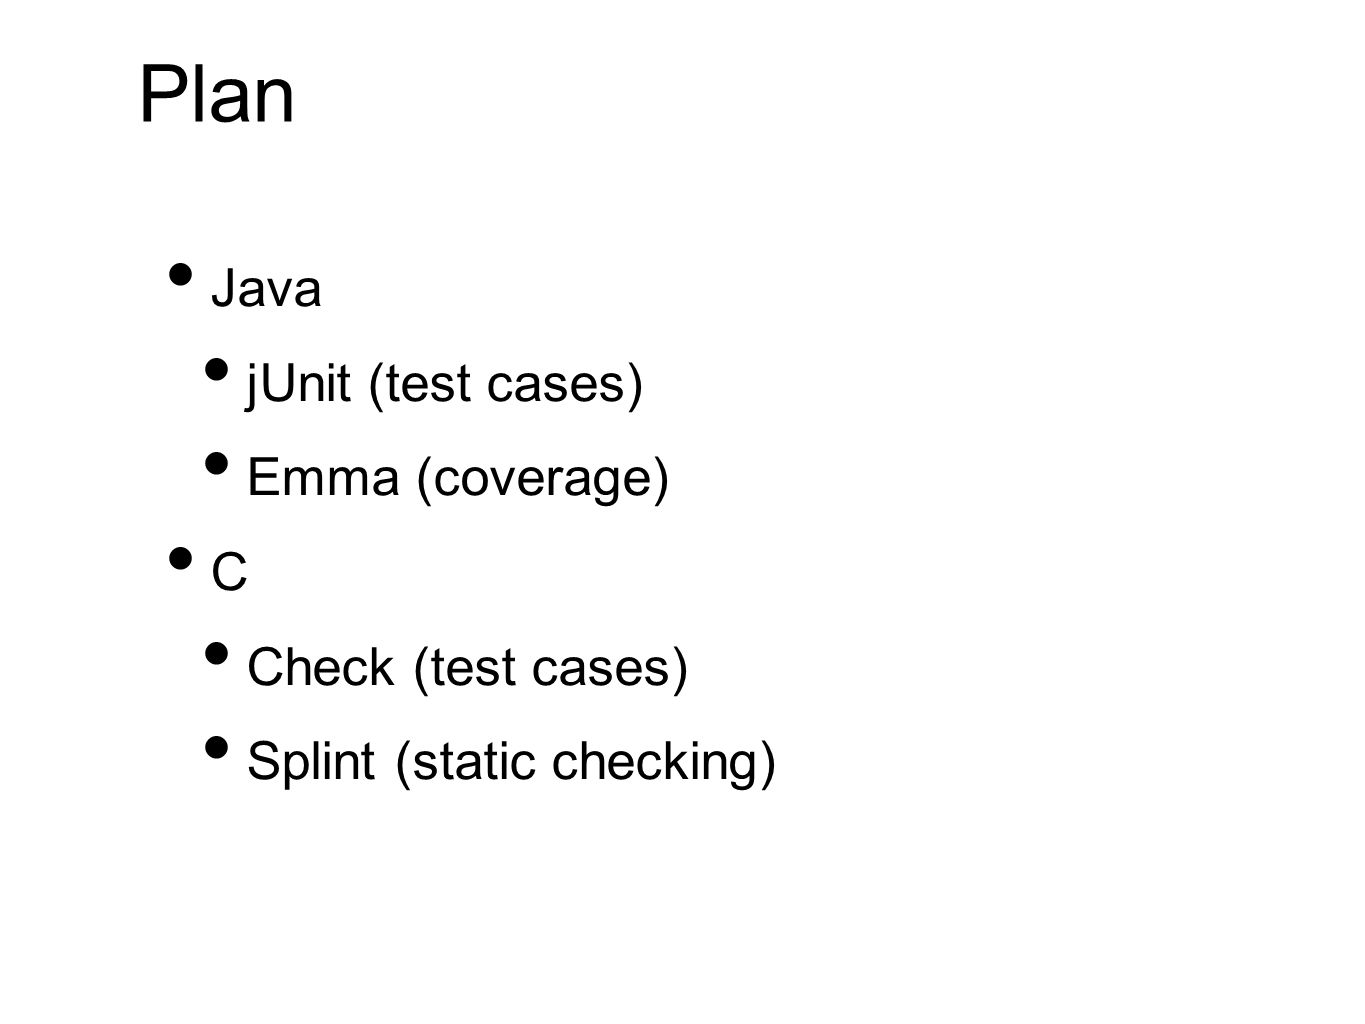 jUnit Testing harness for Java Enables quick and simple test creation, execution, and evaluation Tests can be scattered in code or organized into separate suites http://www.junit.org/ http://www.junit.org